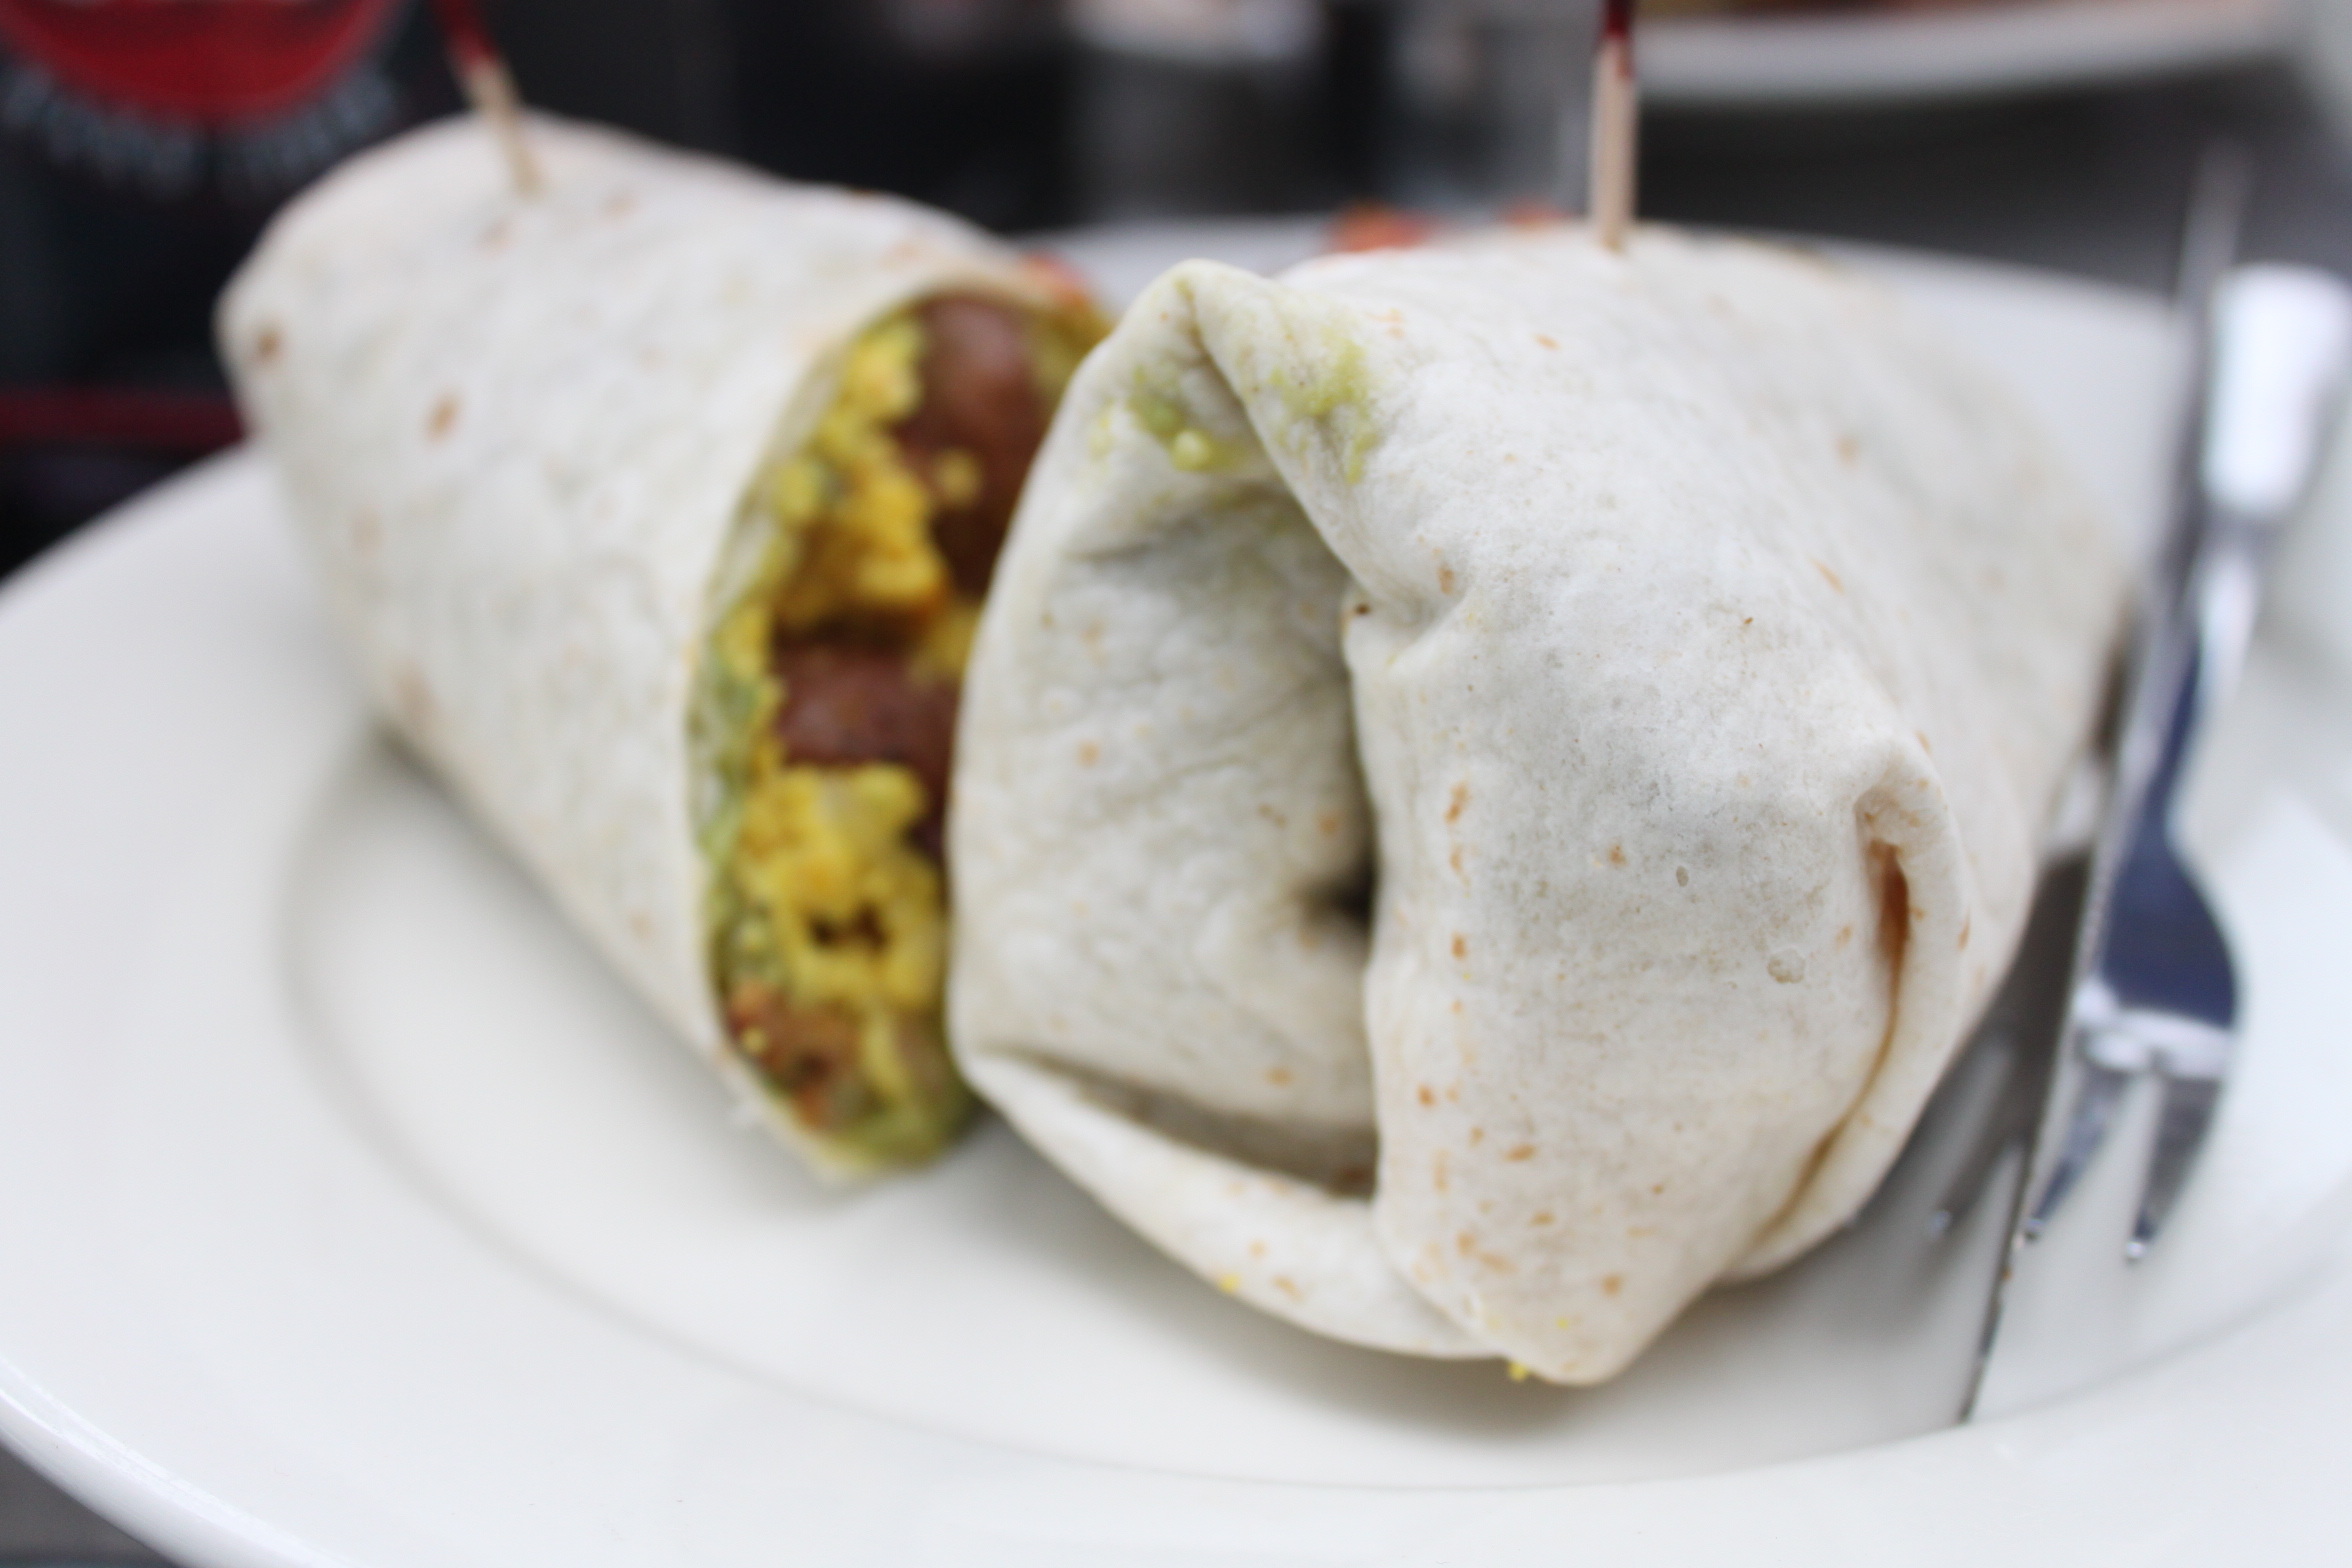 Vegan breakfast burrito from The Other Side Cafe | Photo by Patricia Bruce